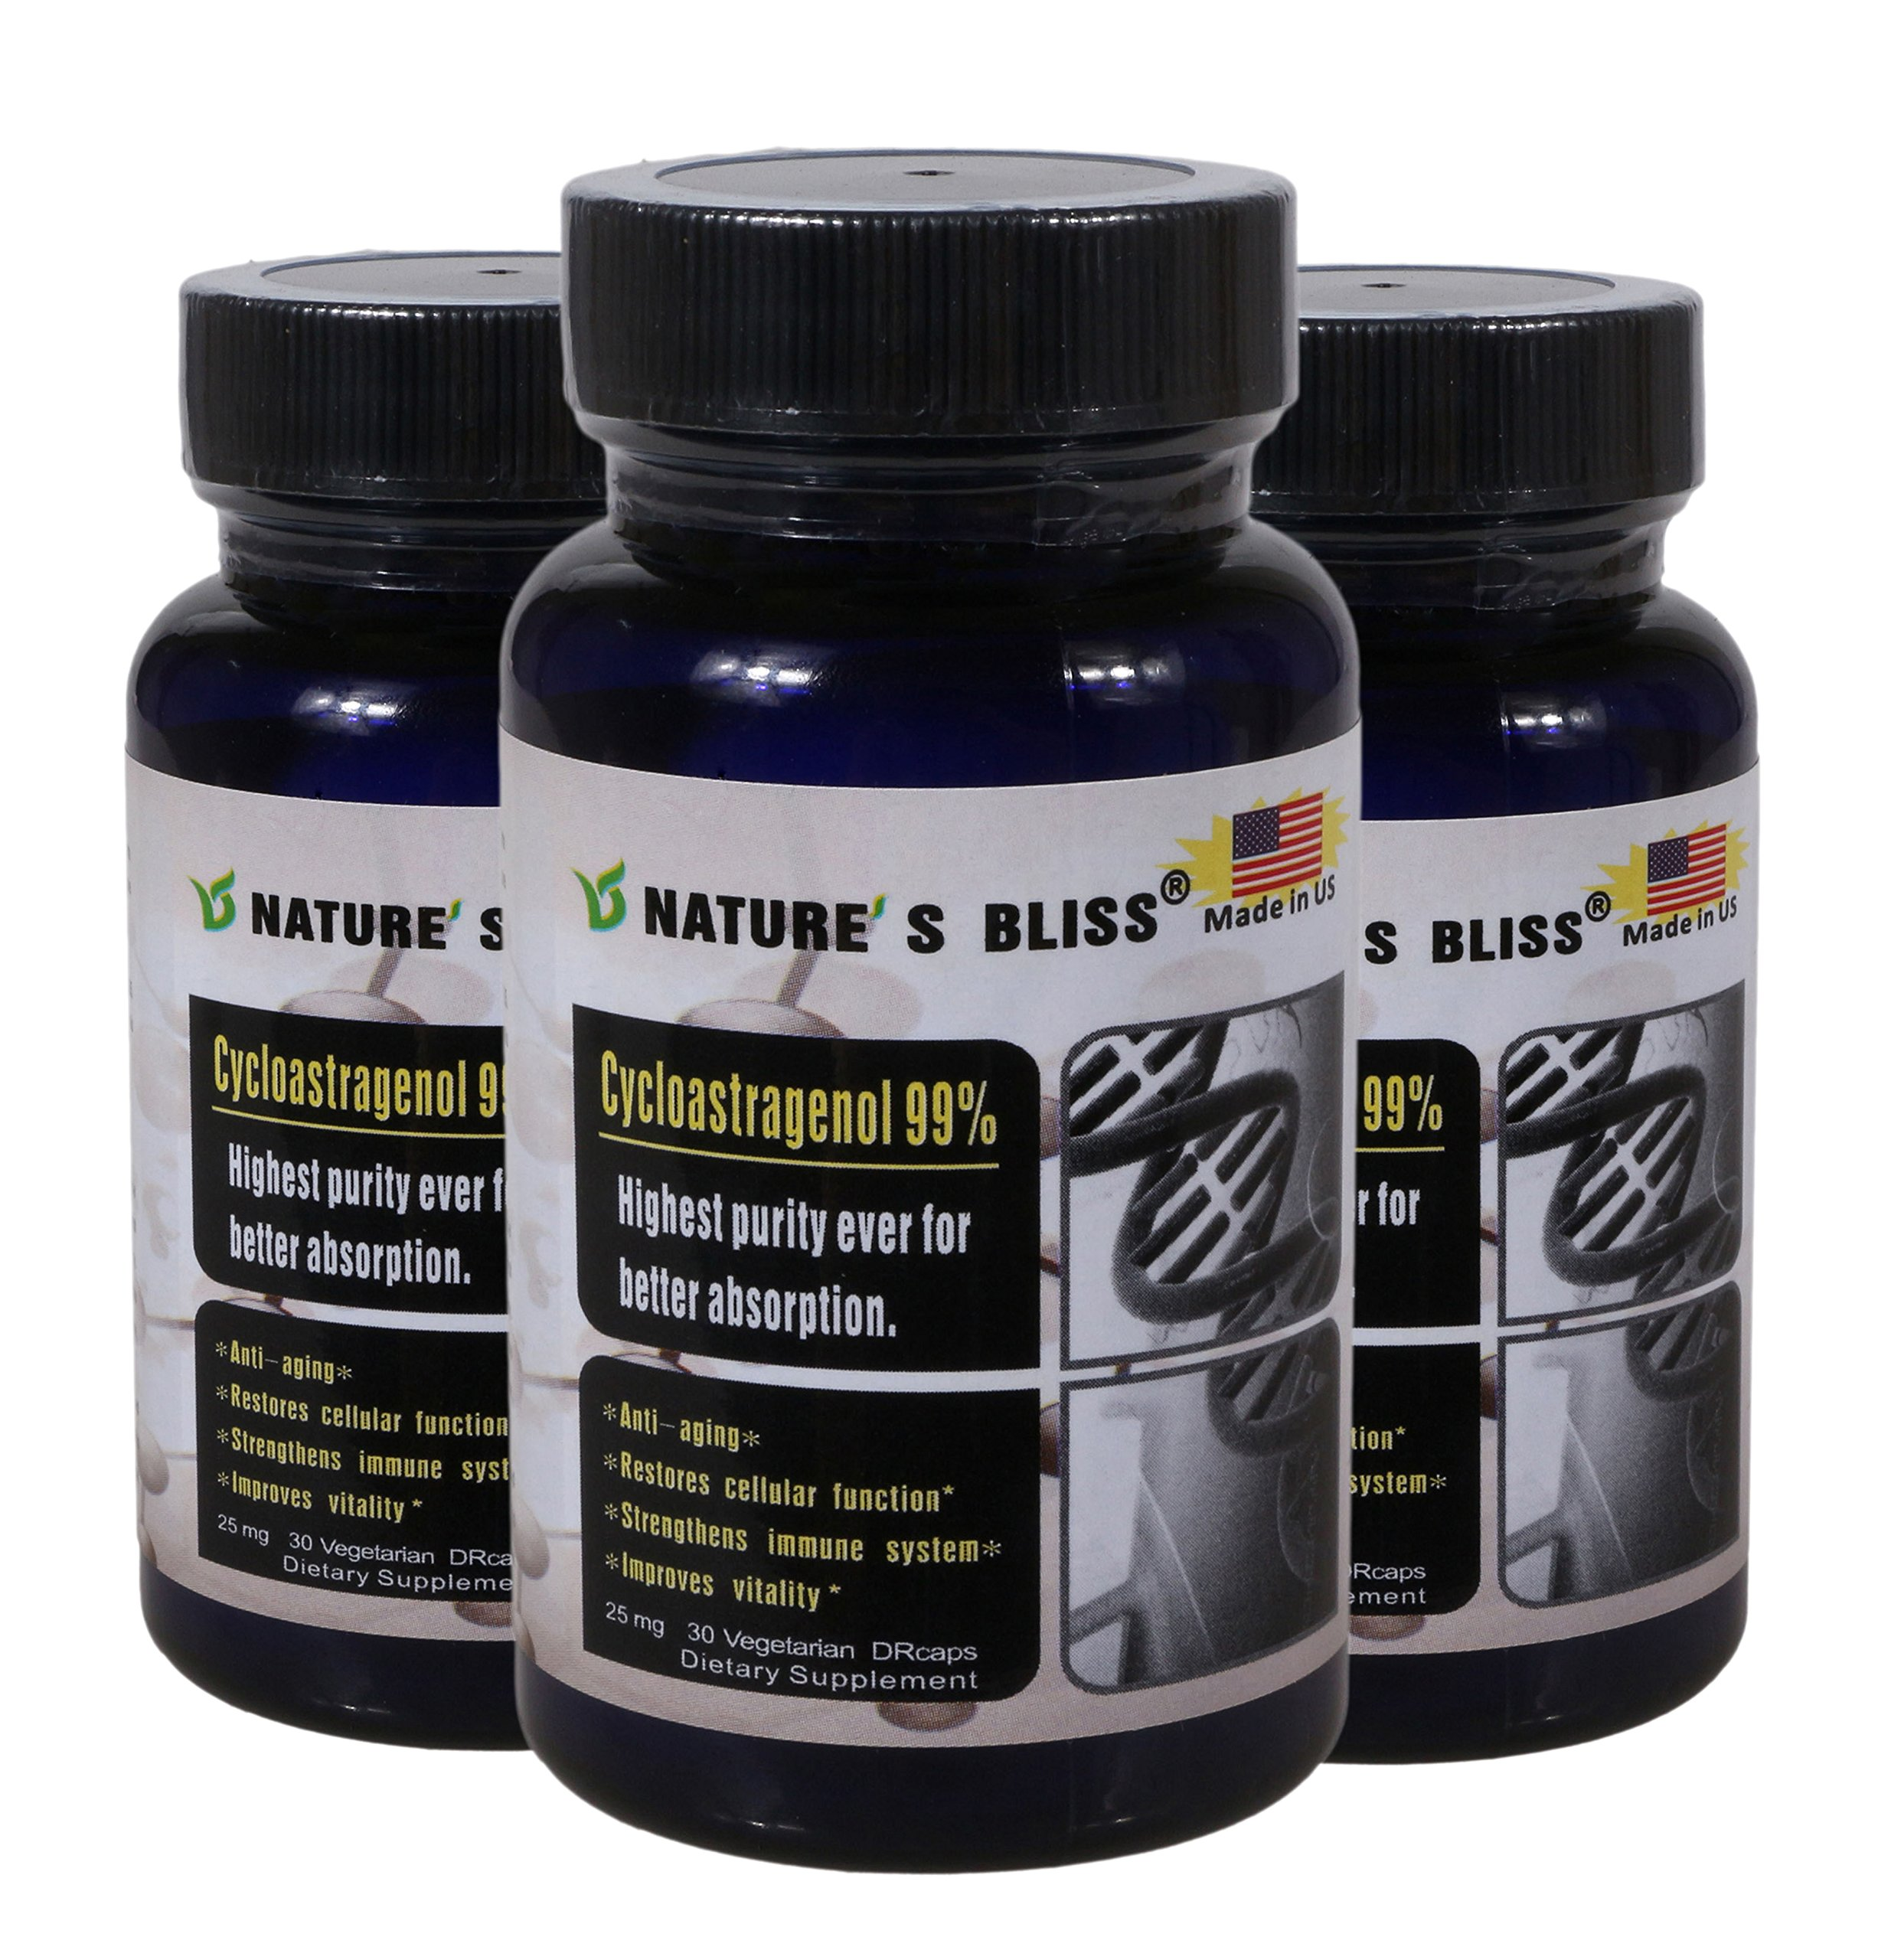 Stomach Acid Protected & Super-Absorption Cycloastragenol 99%, Made in USA, 90 caps in 3 bottles (25mg*30caps*3bottles)